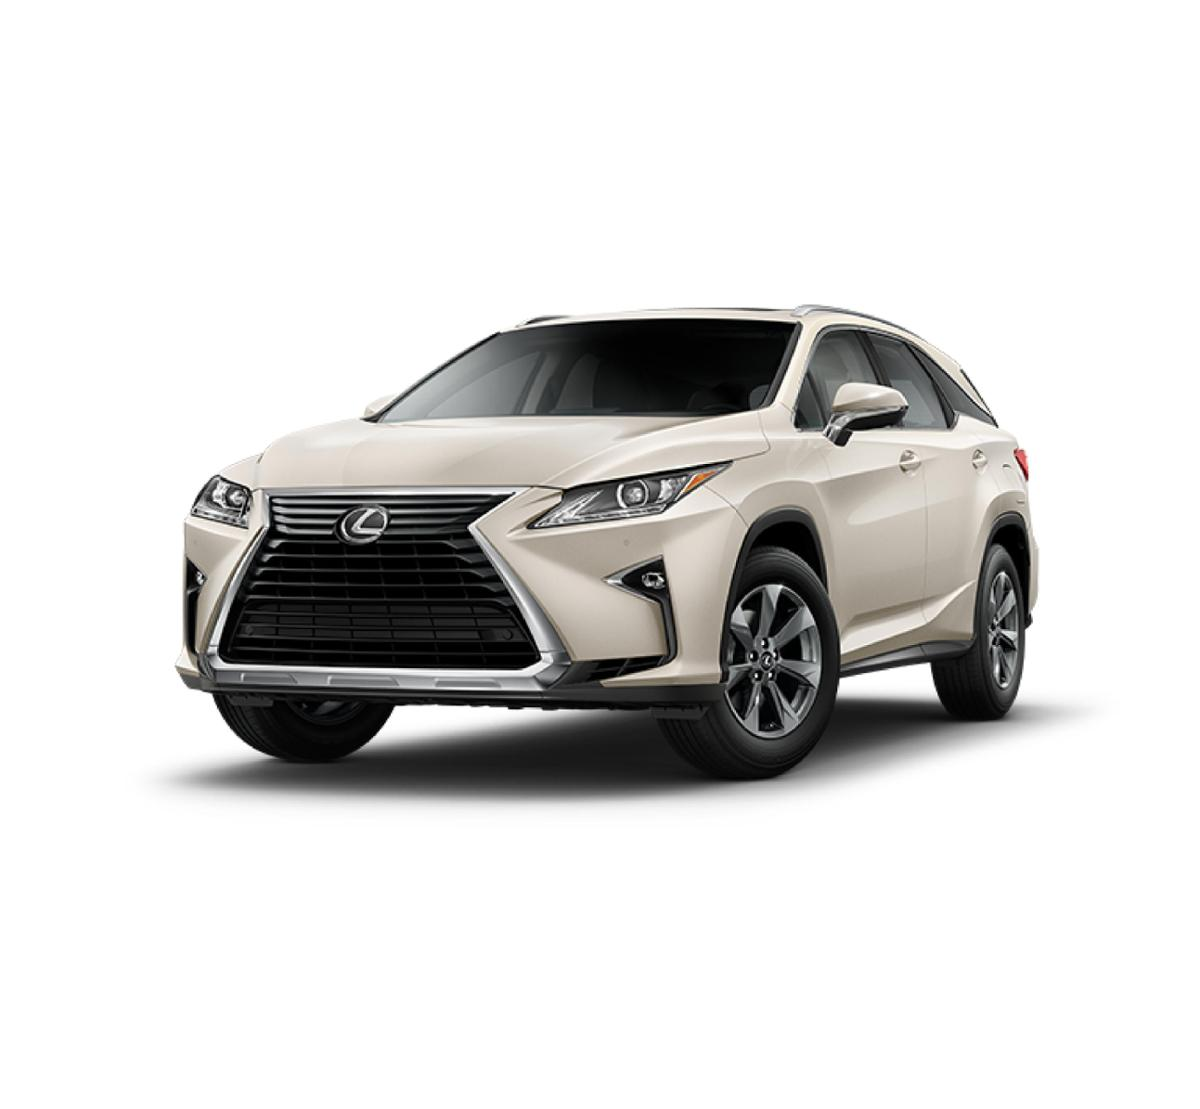 2018 Lexus RX 350L Vehicle Photo in Santa Barbara, CA 93105